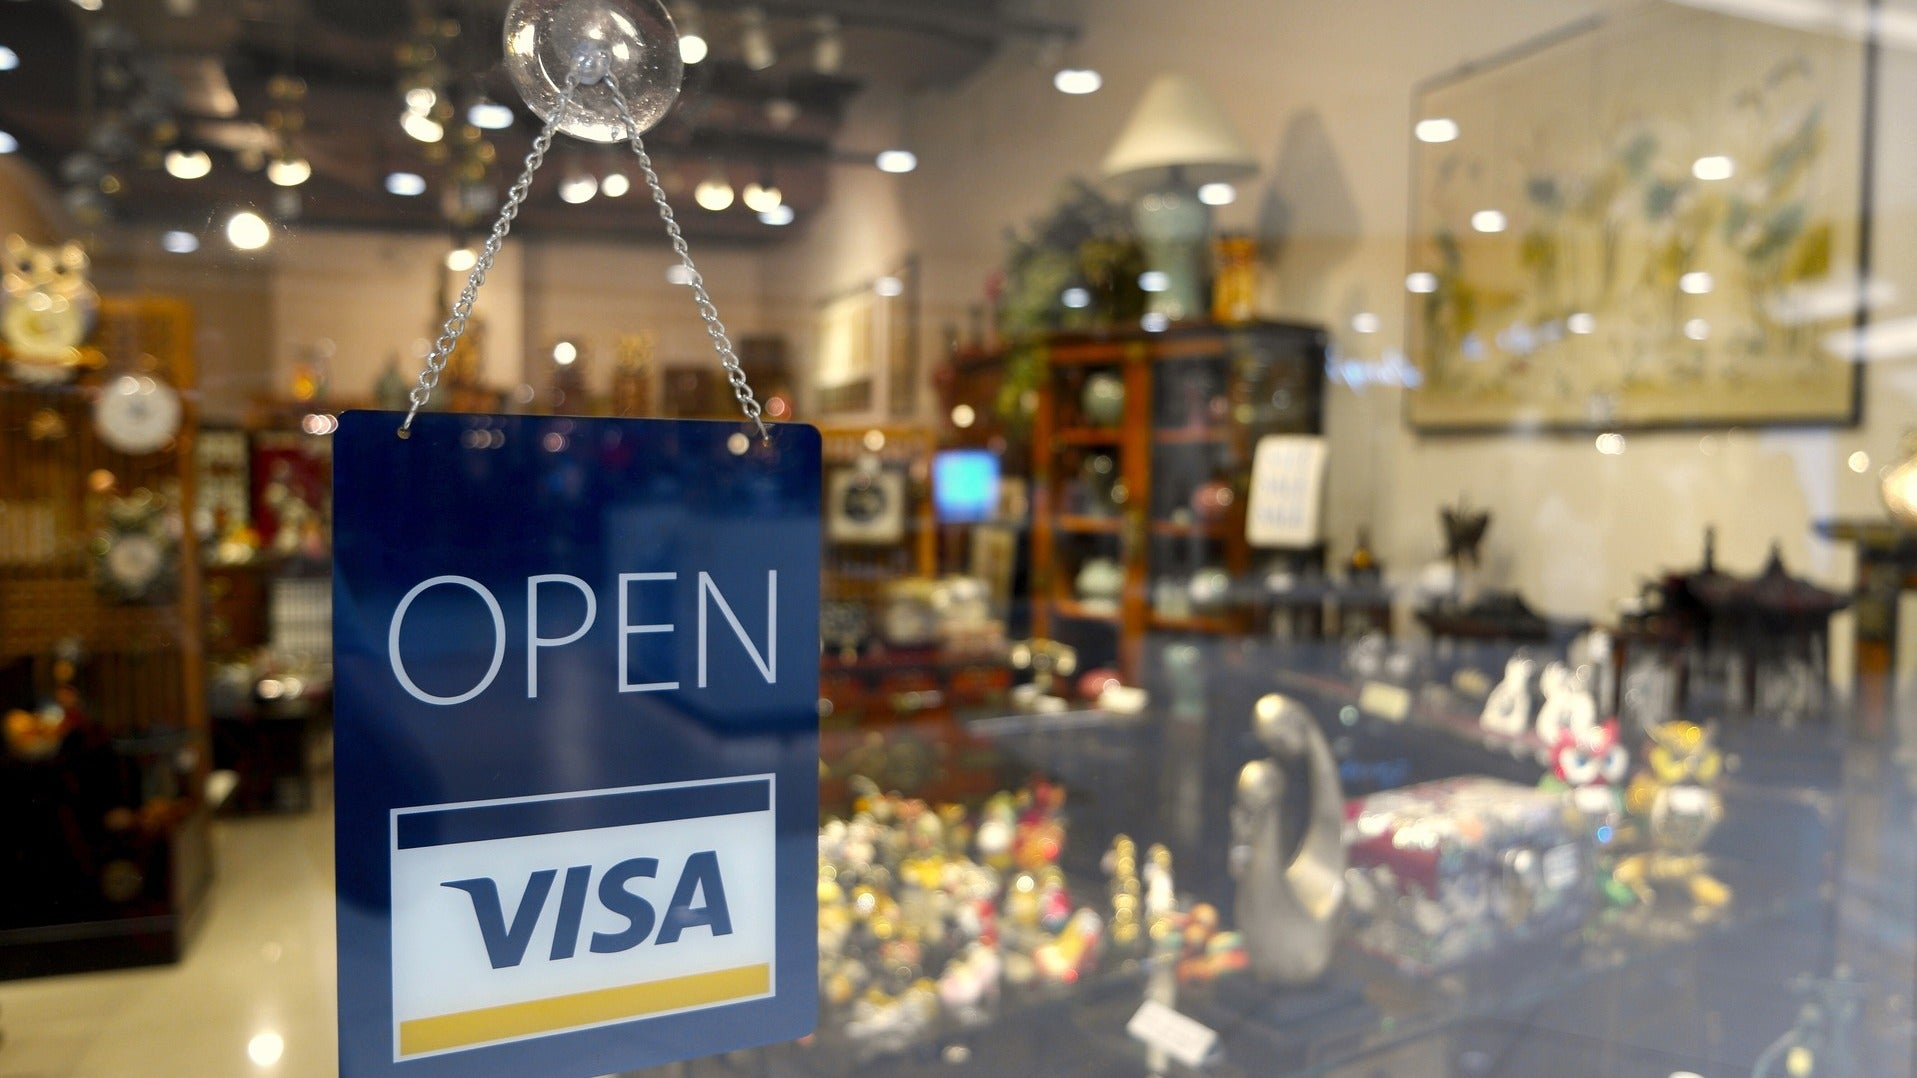 Take Pictures Of Your Credit Card Before You Travel